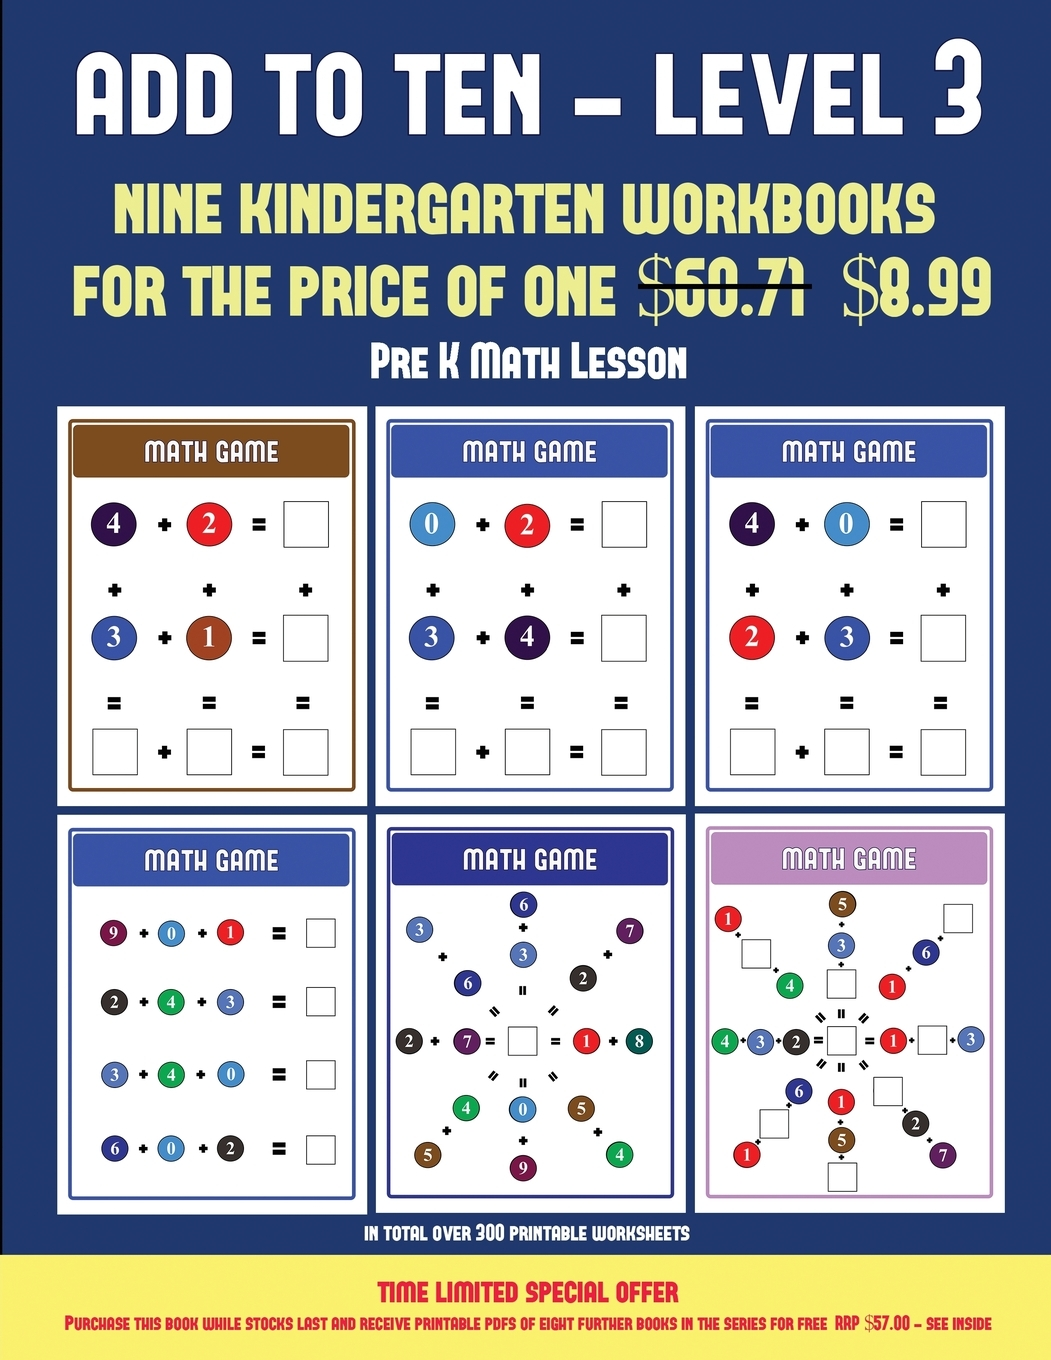 Pre K Math Lesson Pre K Math Lesson Add To Ten